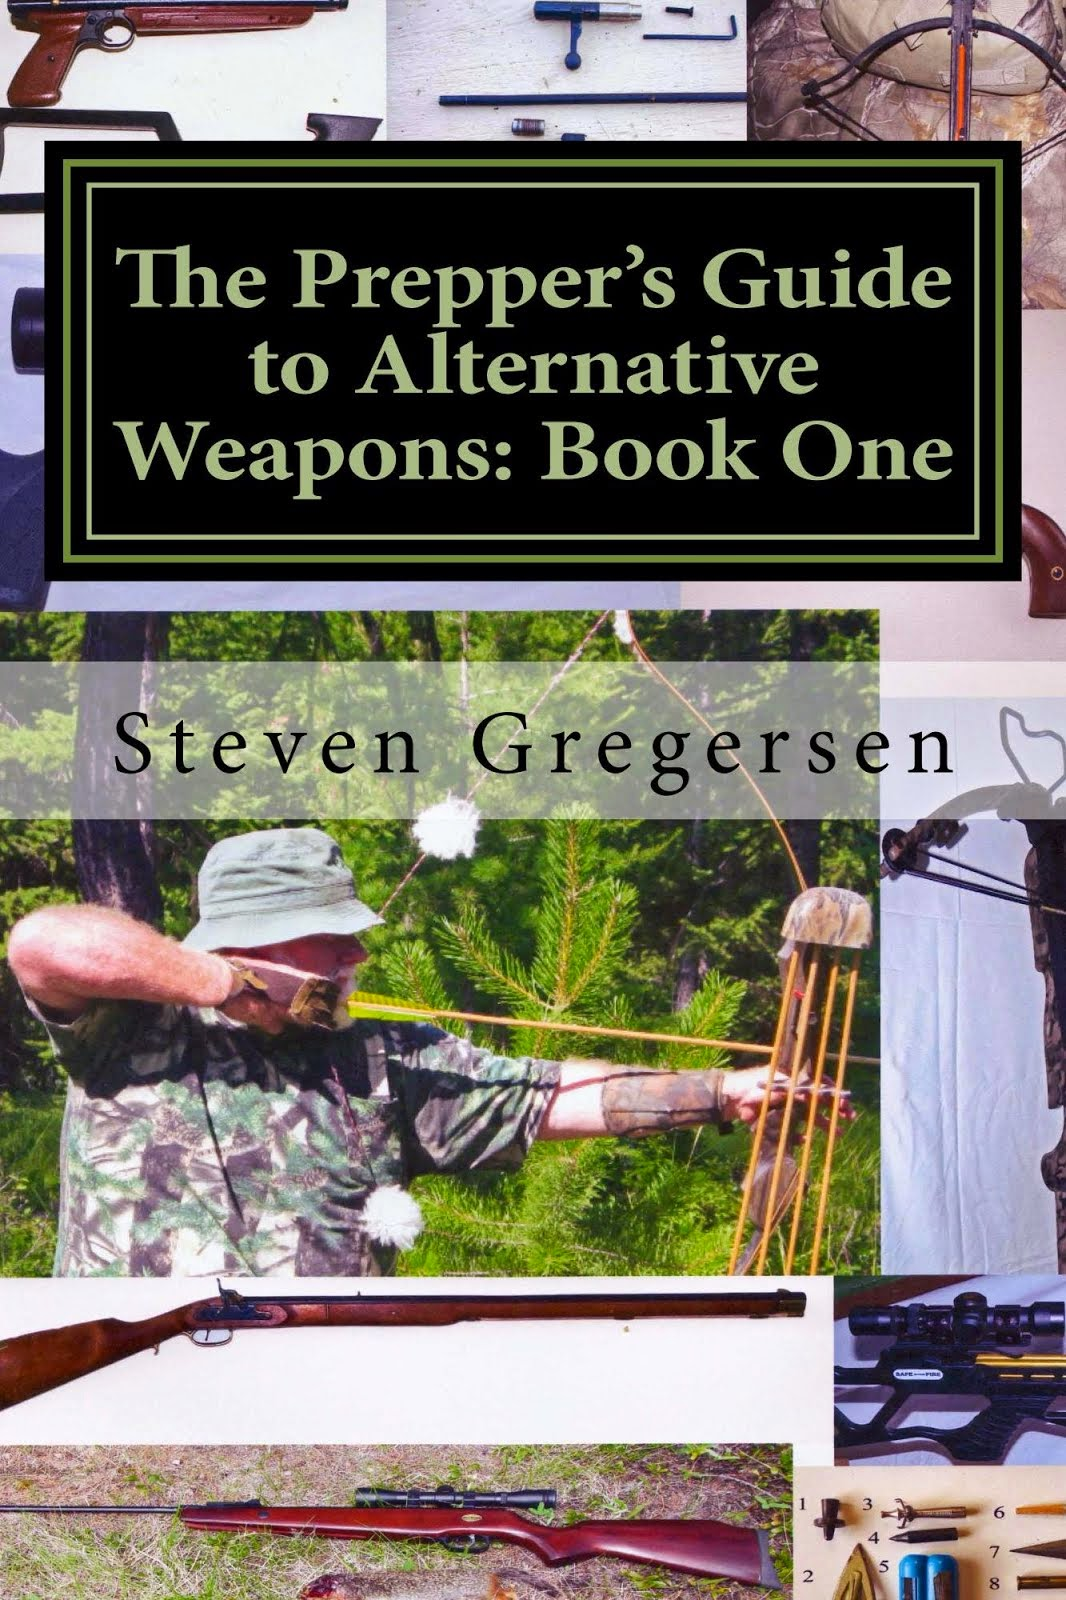 The Prepper's Guide to Alternative Weapons